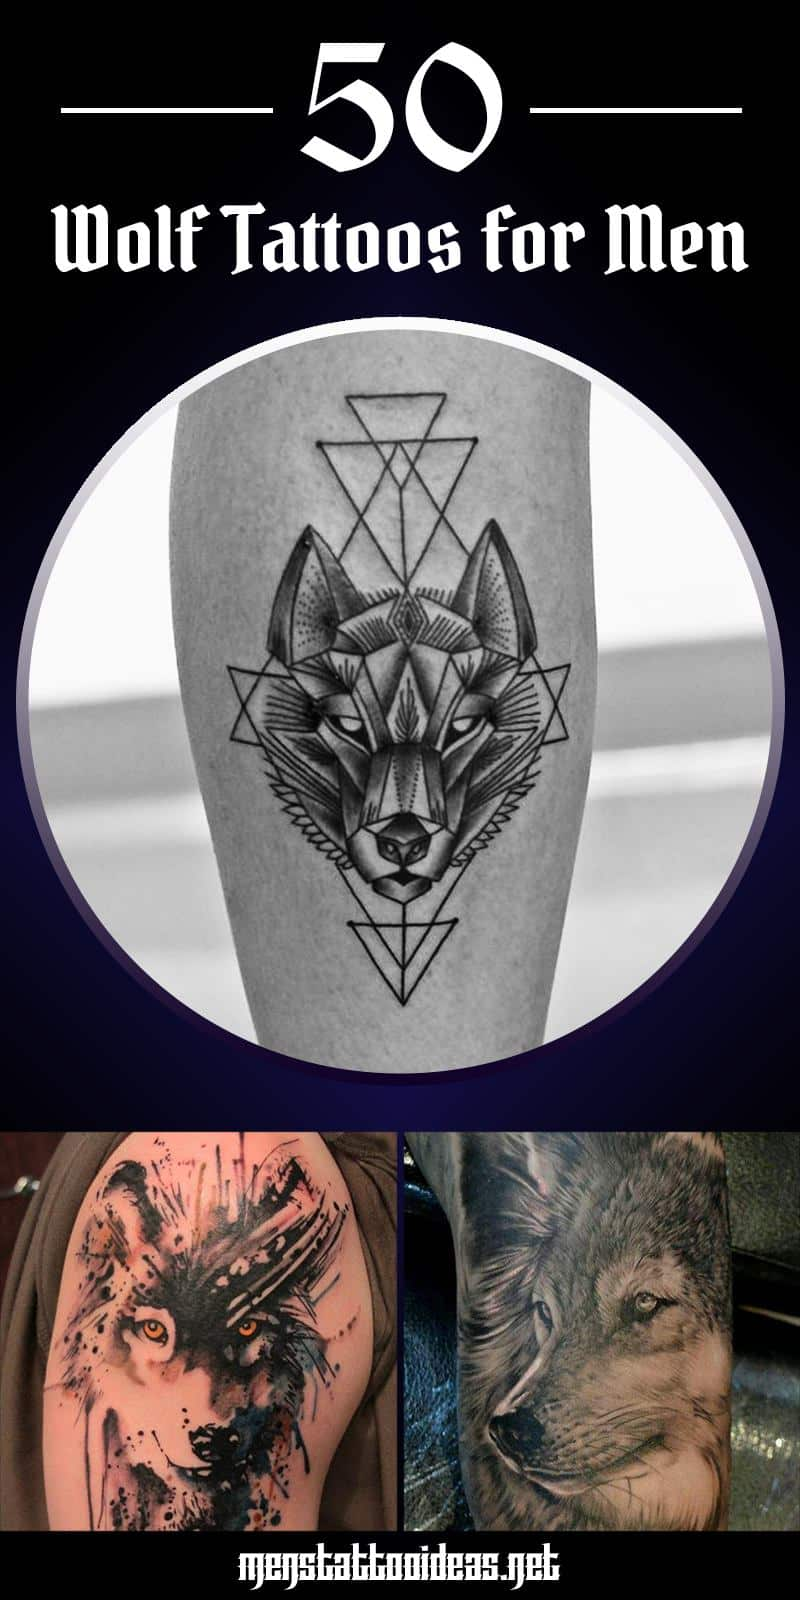 Wolf tattoo ideas